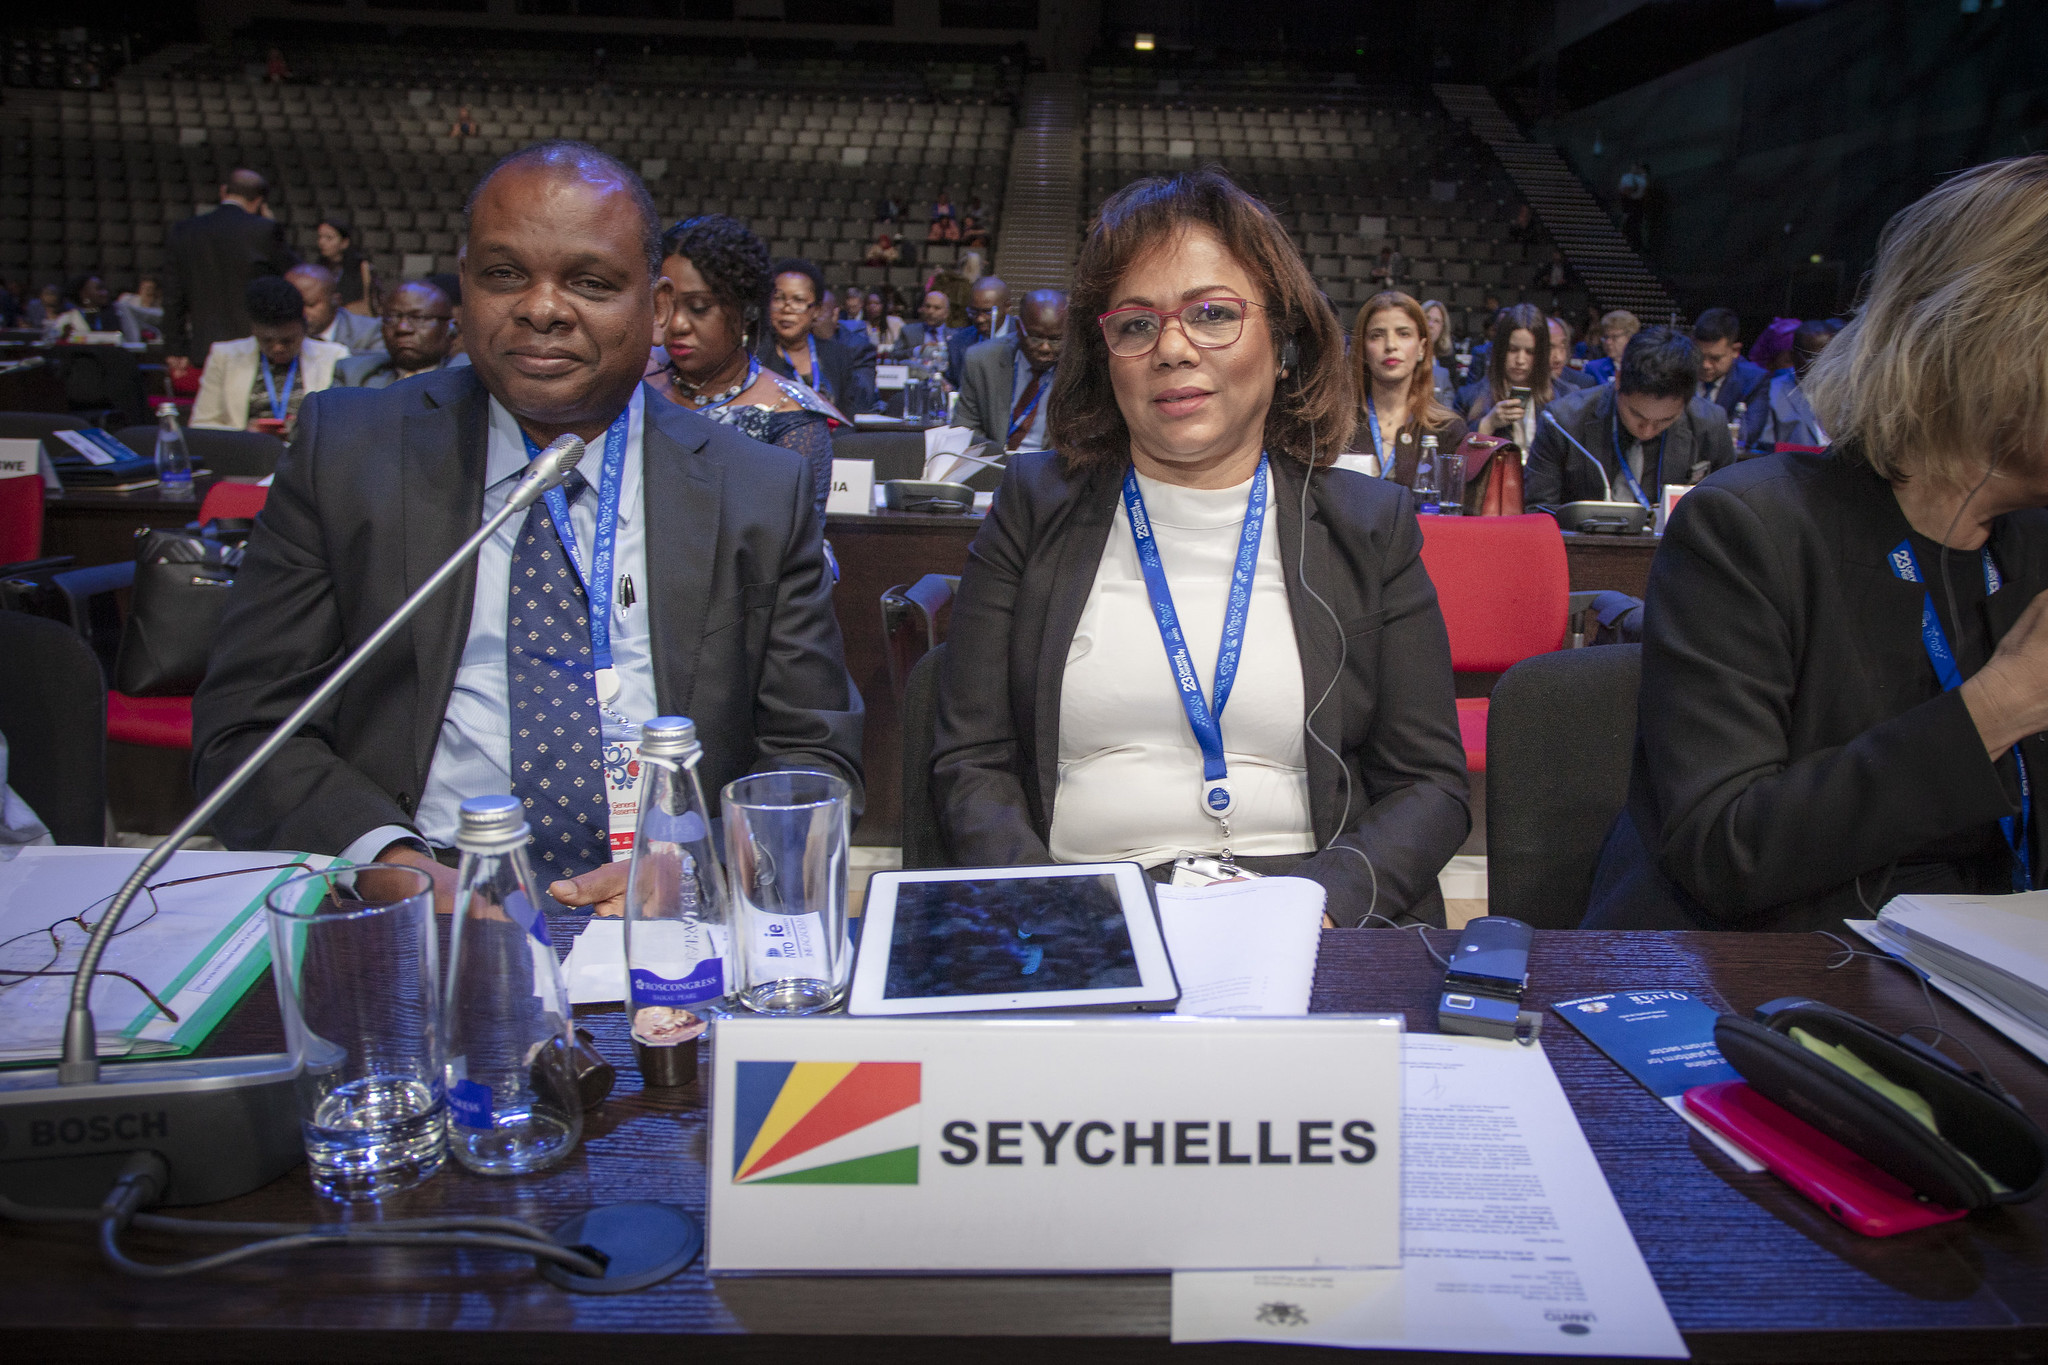 #UNWTOGA: 63rd CAF Meeting moves to Seychelles